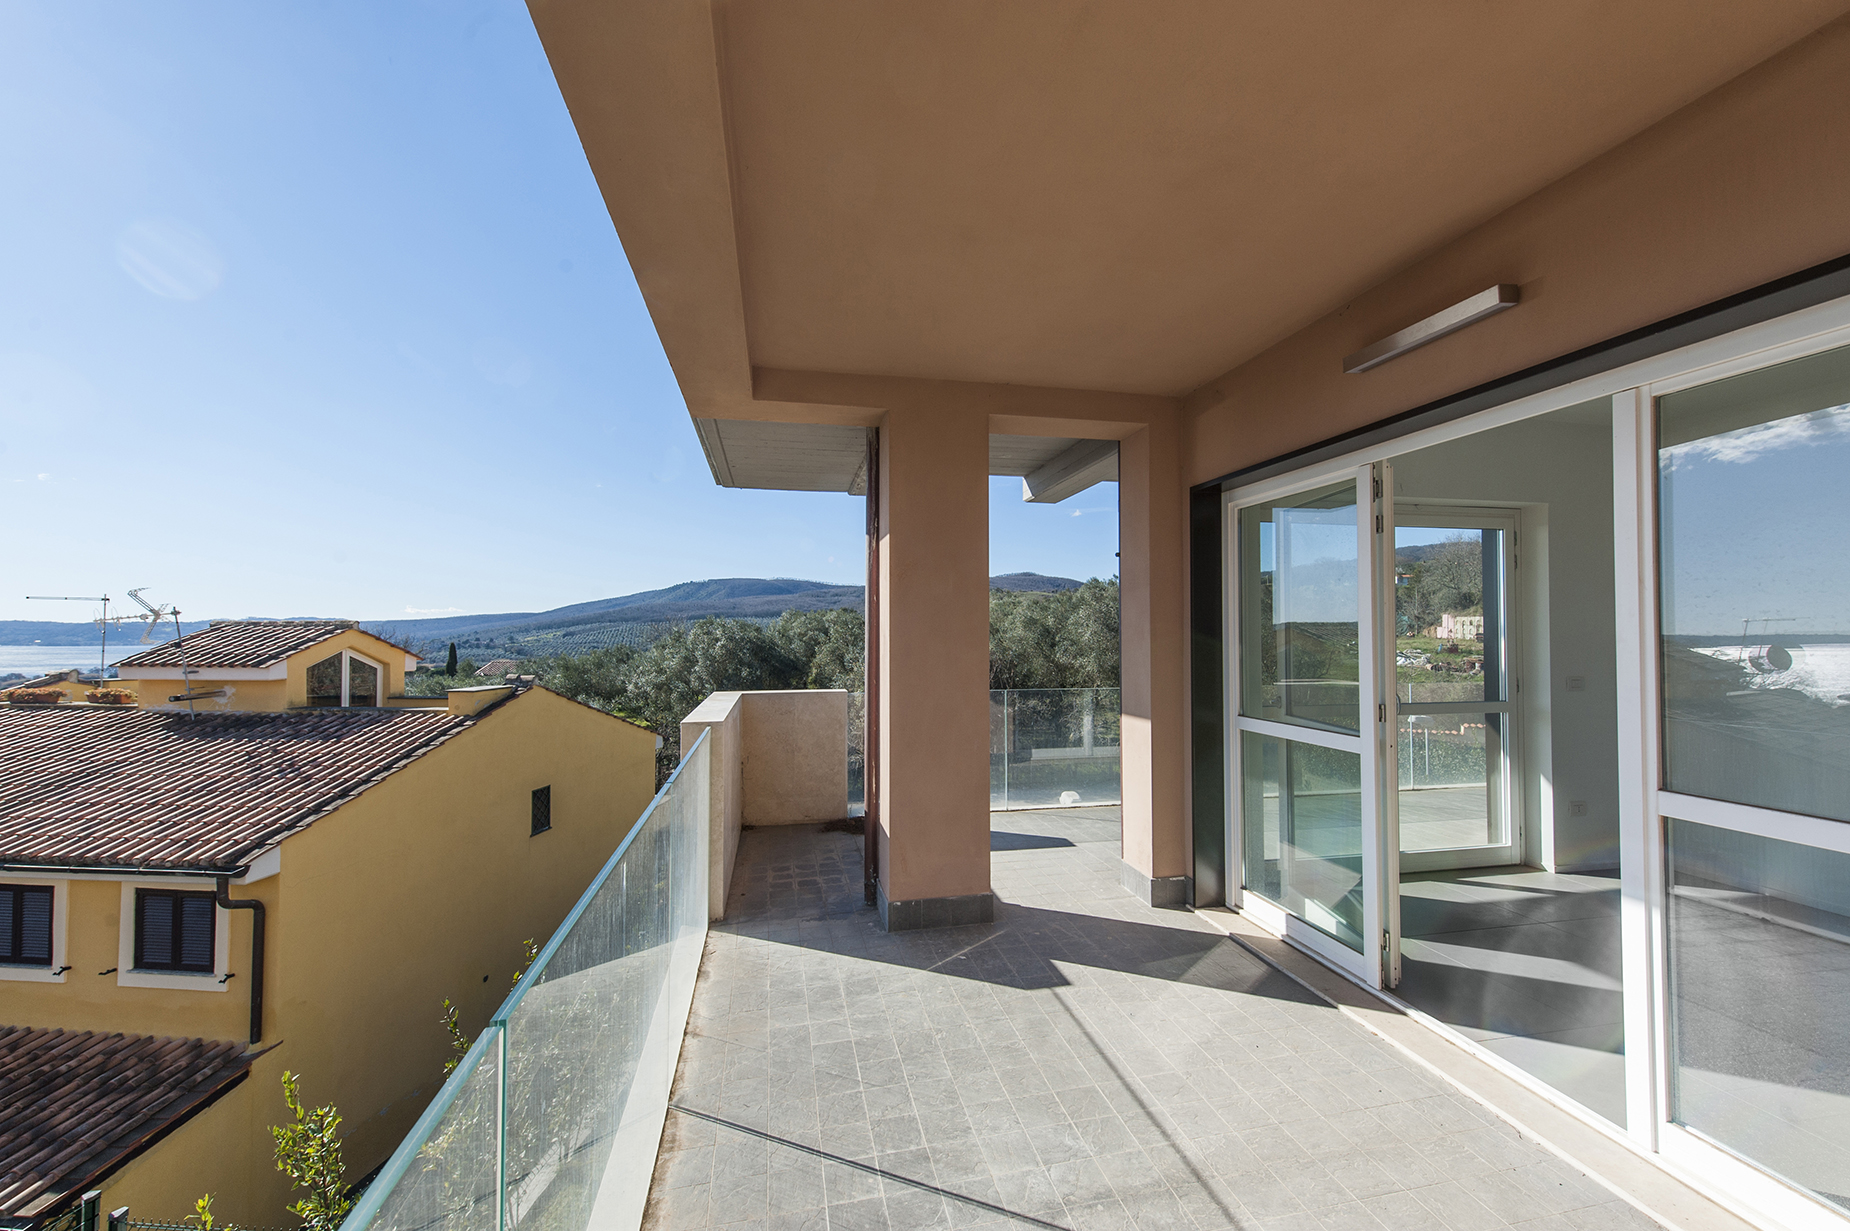 Additional photo for property listing at Apartments in Trevignano a few minutes from the lake Trevignano Romano, Rome Italien